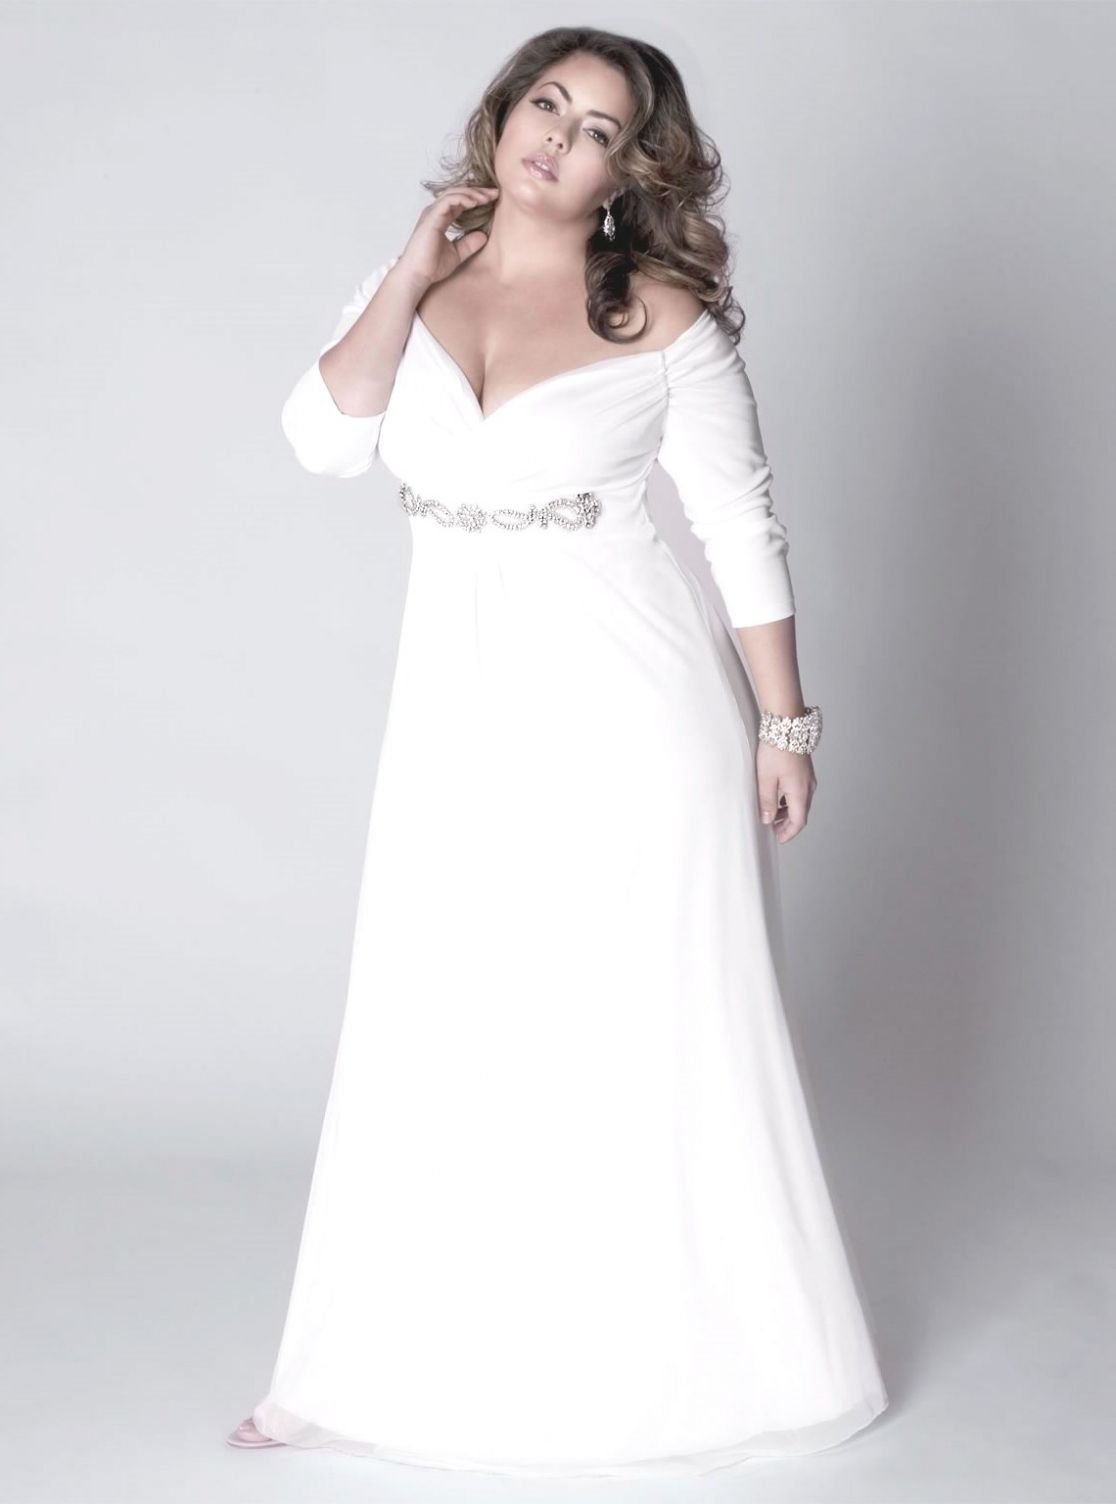 Plus size second wedding dresses wedding dresses for fall check